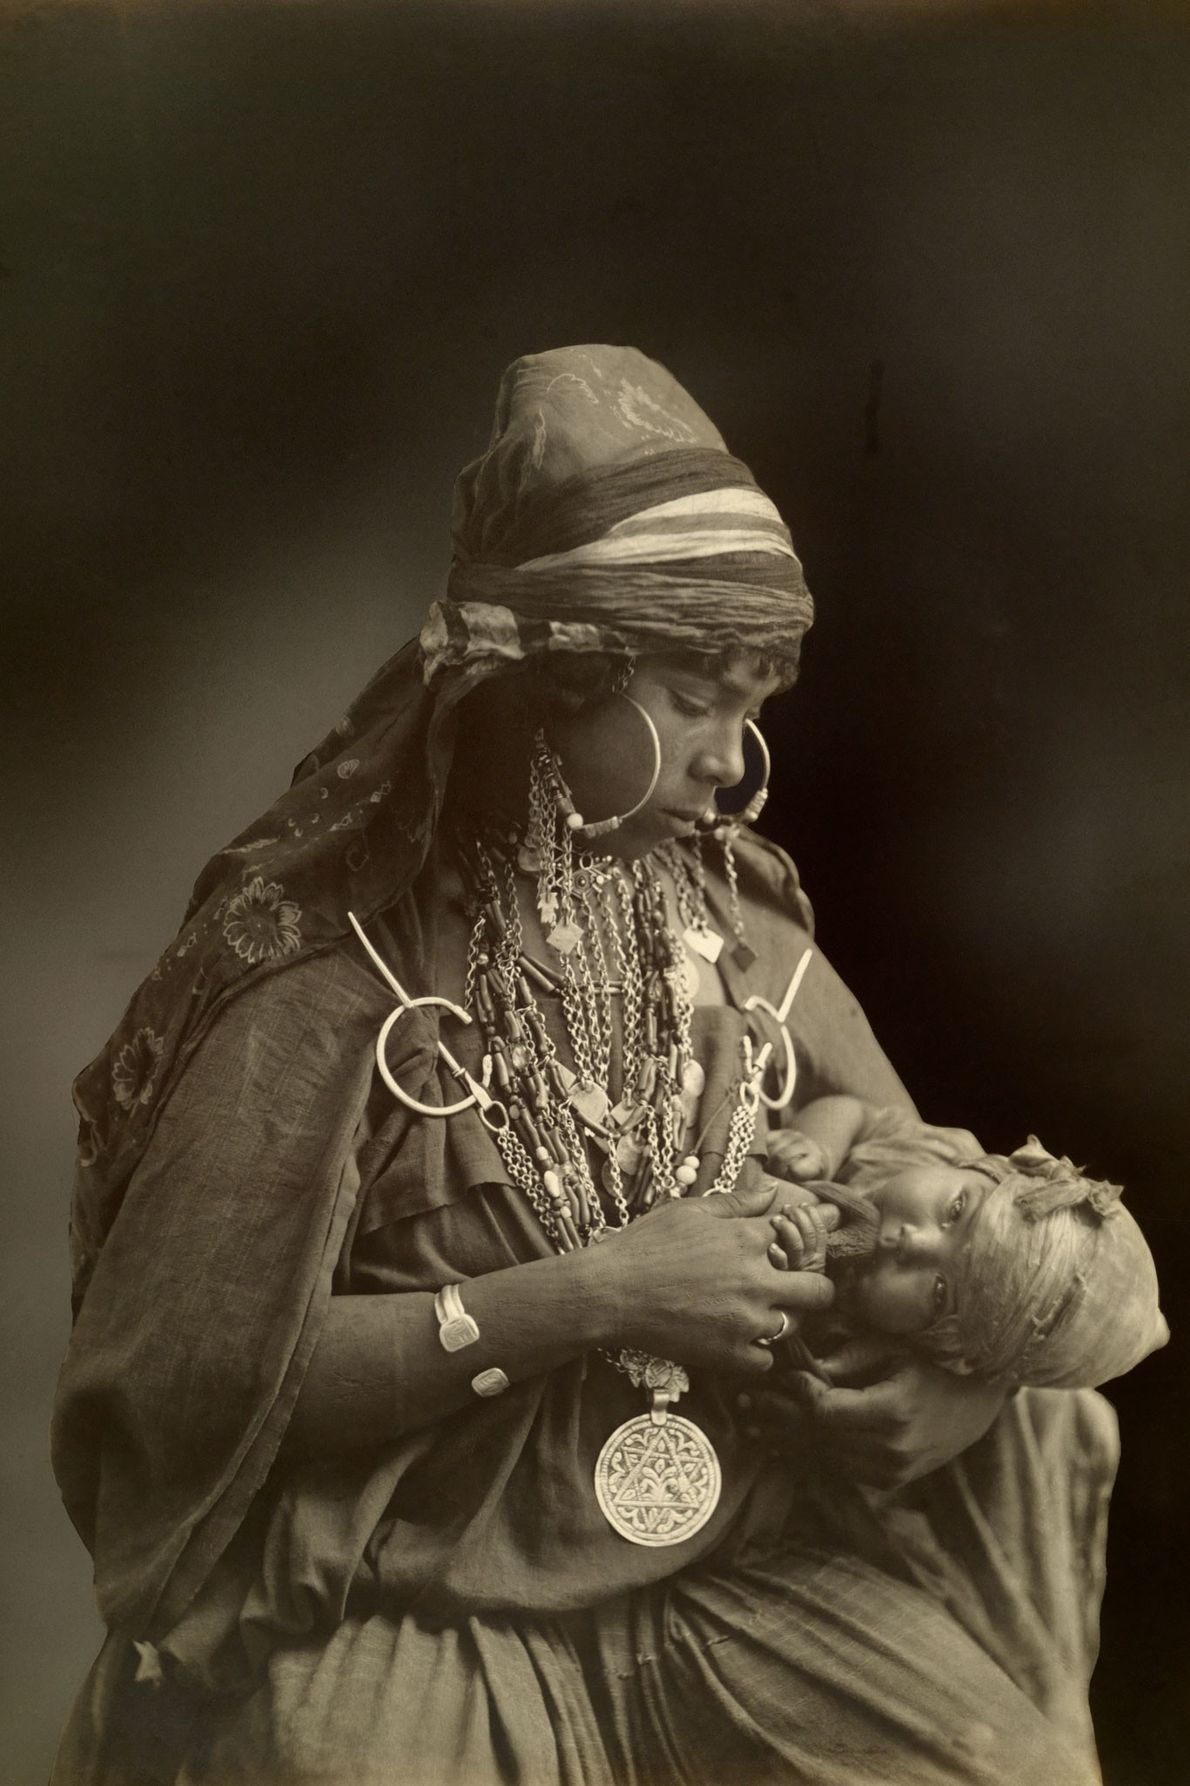 A Bedouin mother, elaborately adorned with jewelry, gazes at her infant child in the early 1900s.